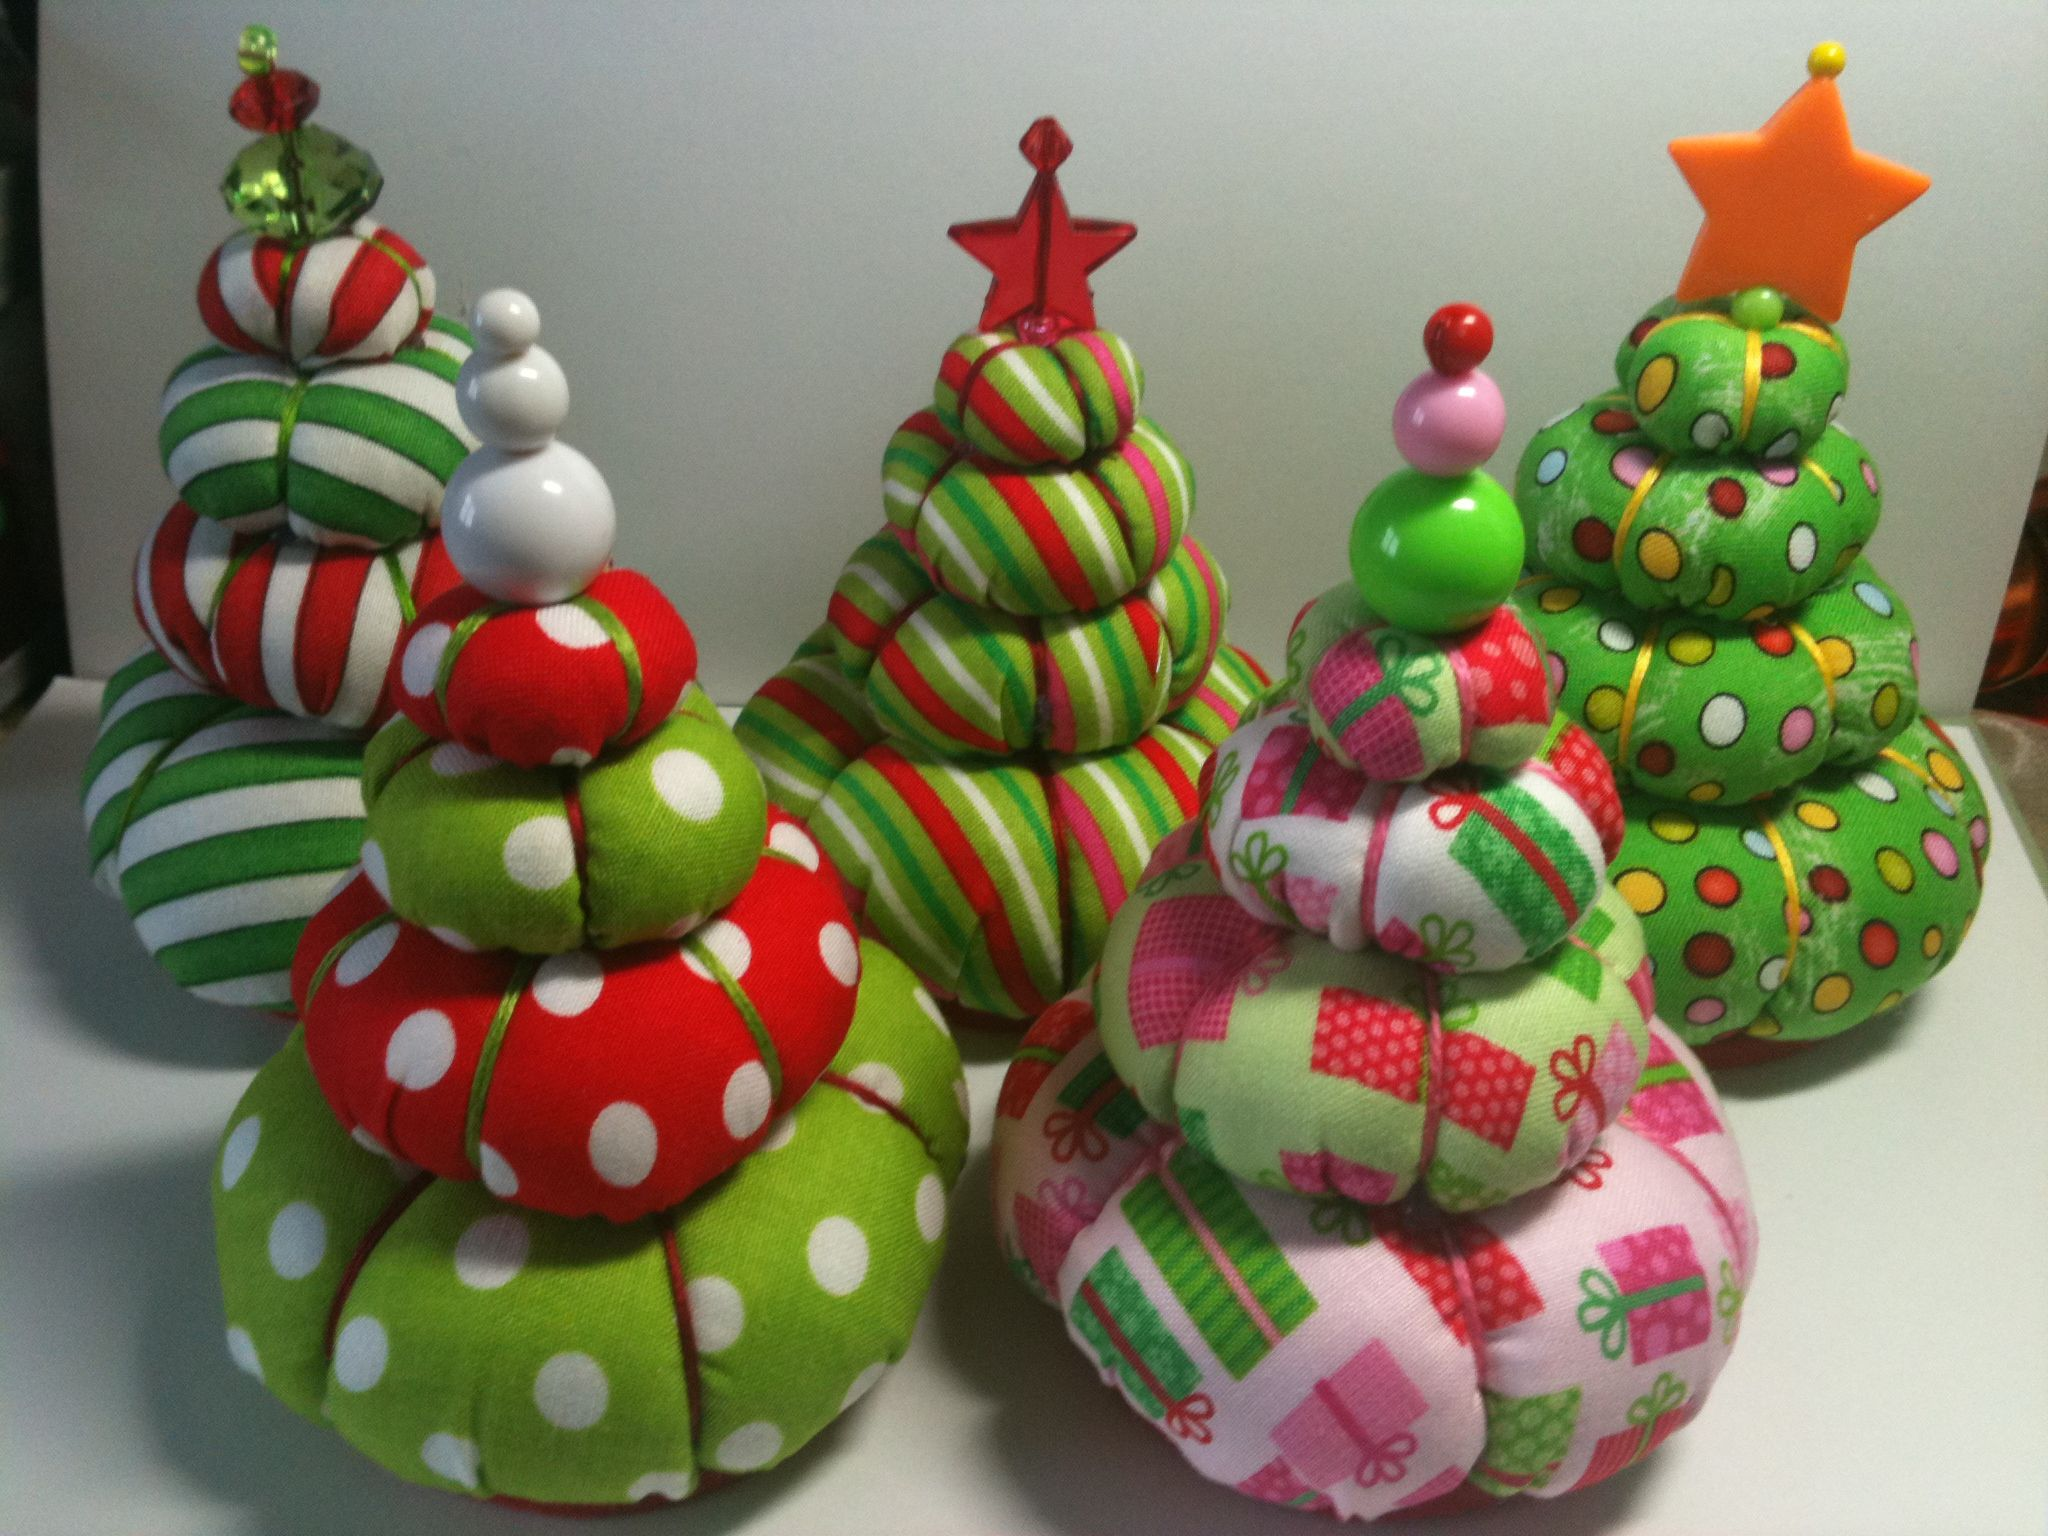 Margarita ornament - My Christmas Tree Pin Cushions Designed And Created By Margarita